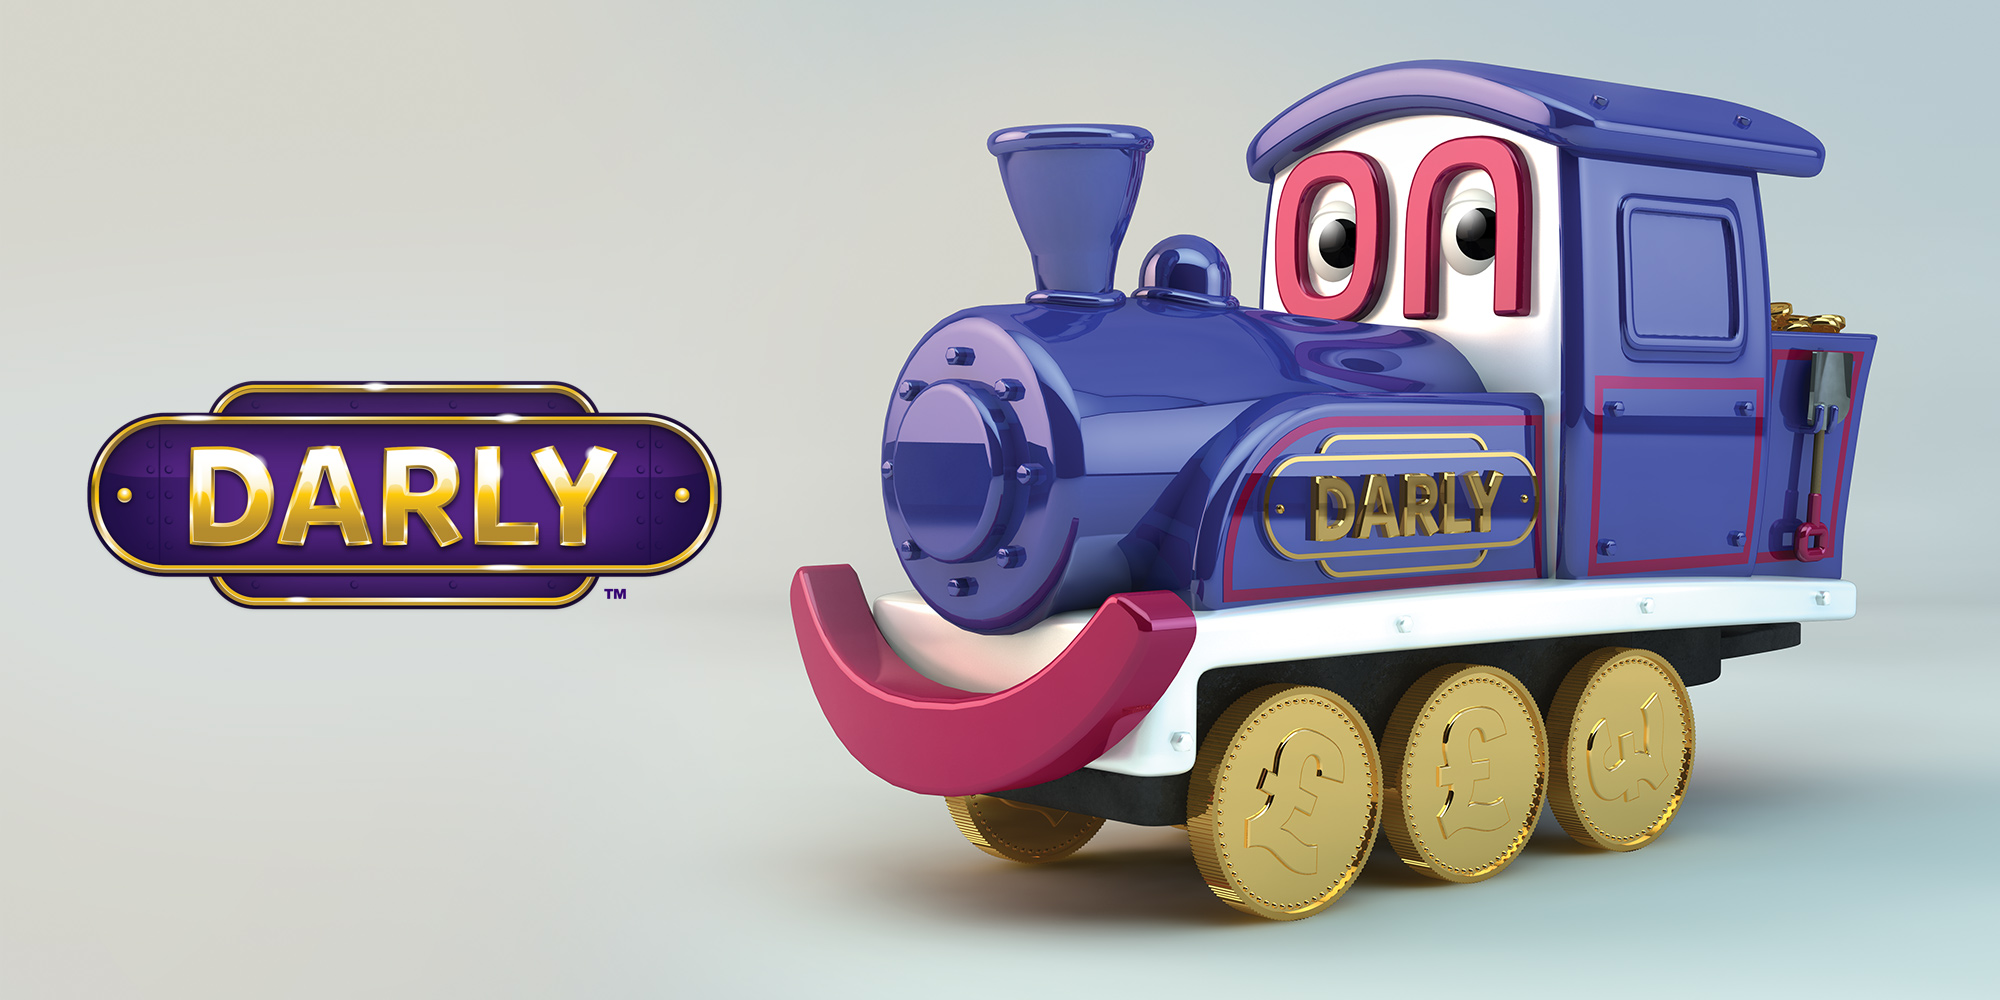 shift brand darly the